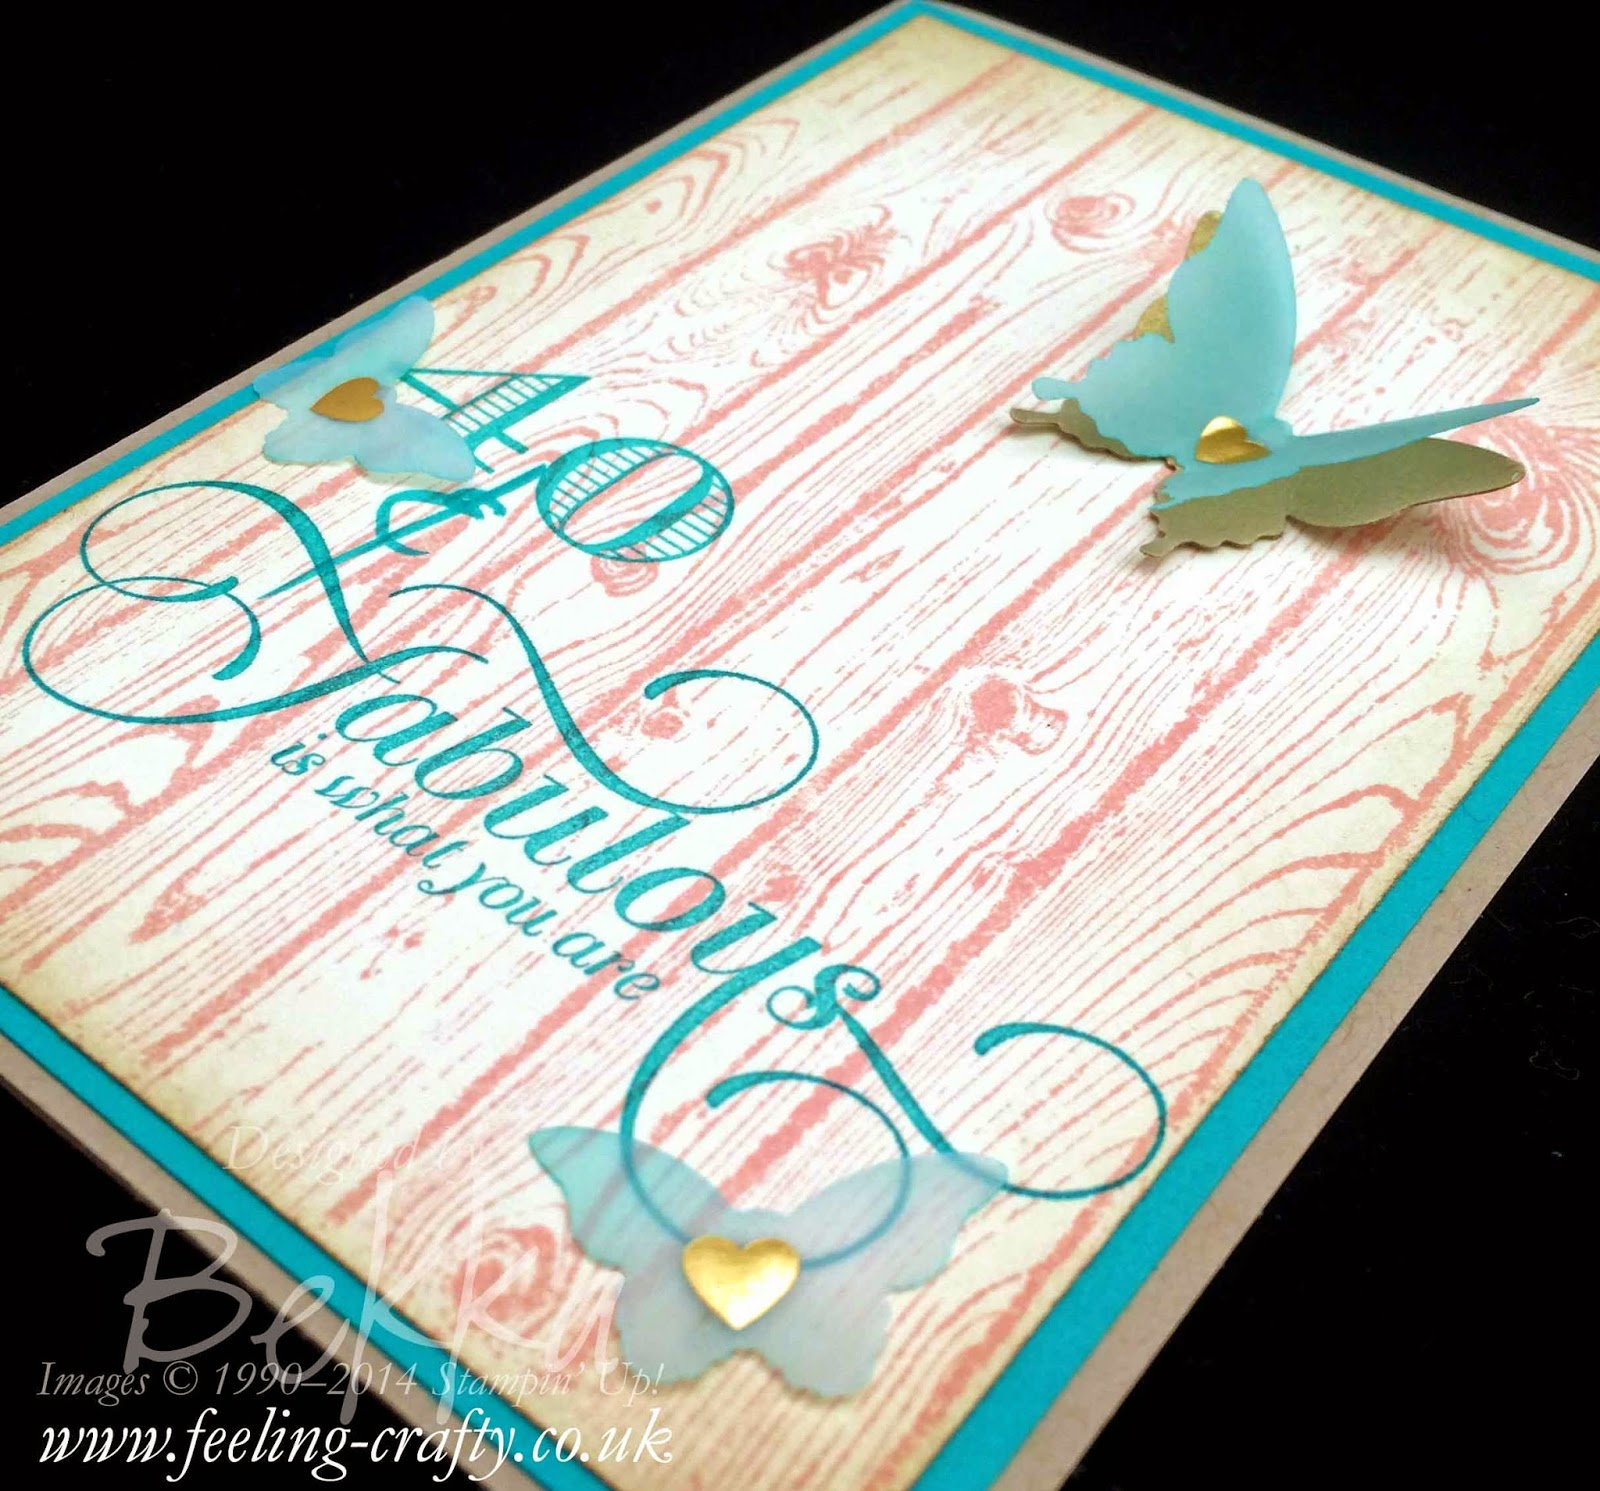 40 & Fabulous Birthday Card by Stampin' Up! UK Independent Demonstrator Bekka - get your Stampin' Up! Products here